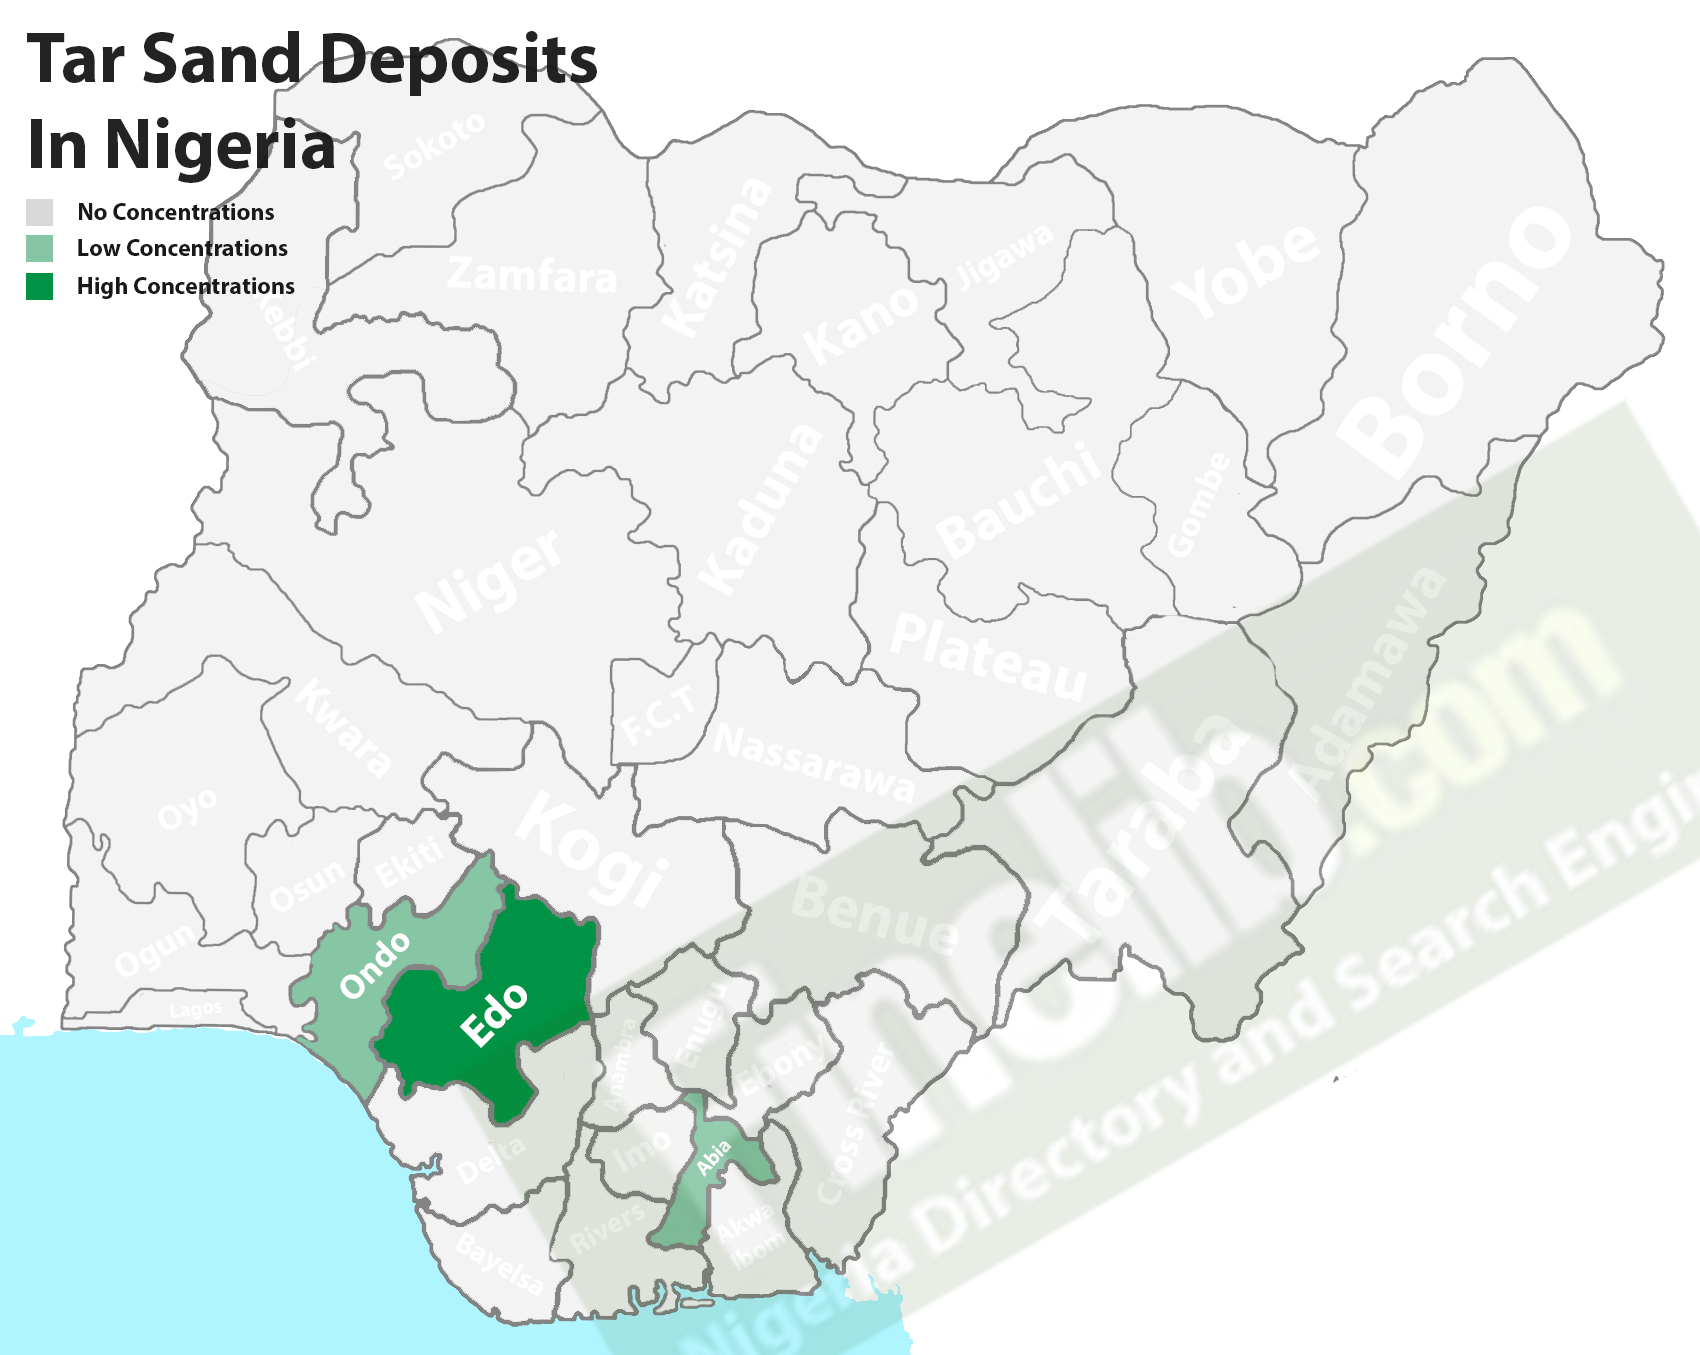 Tar sand mineral deposits in Nigeria